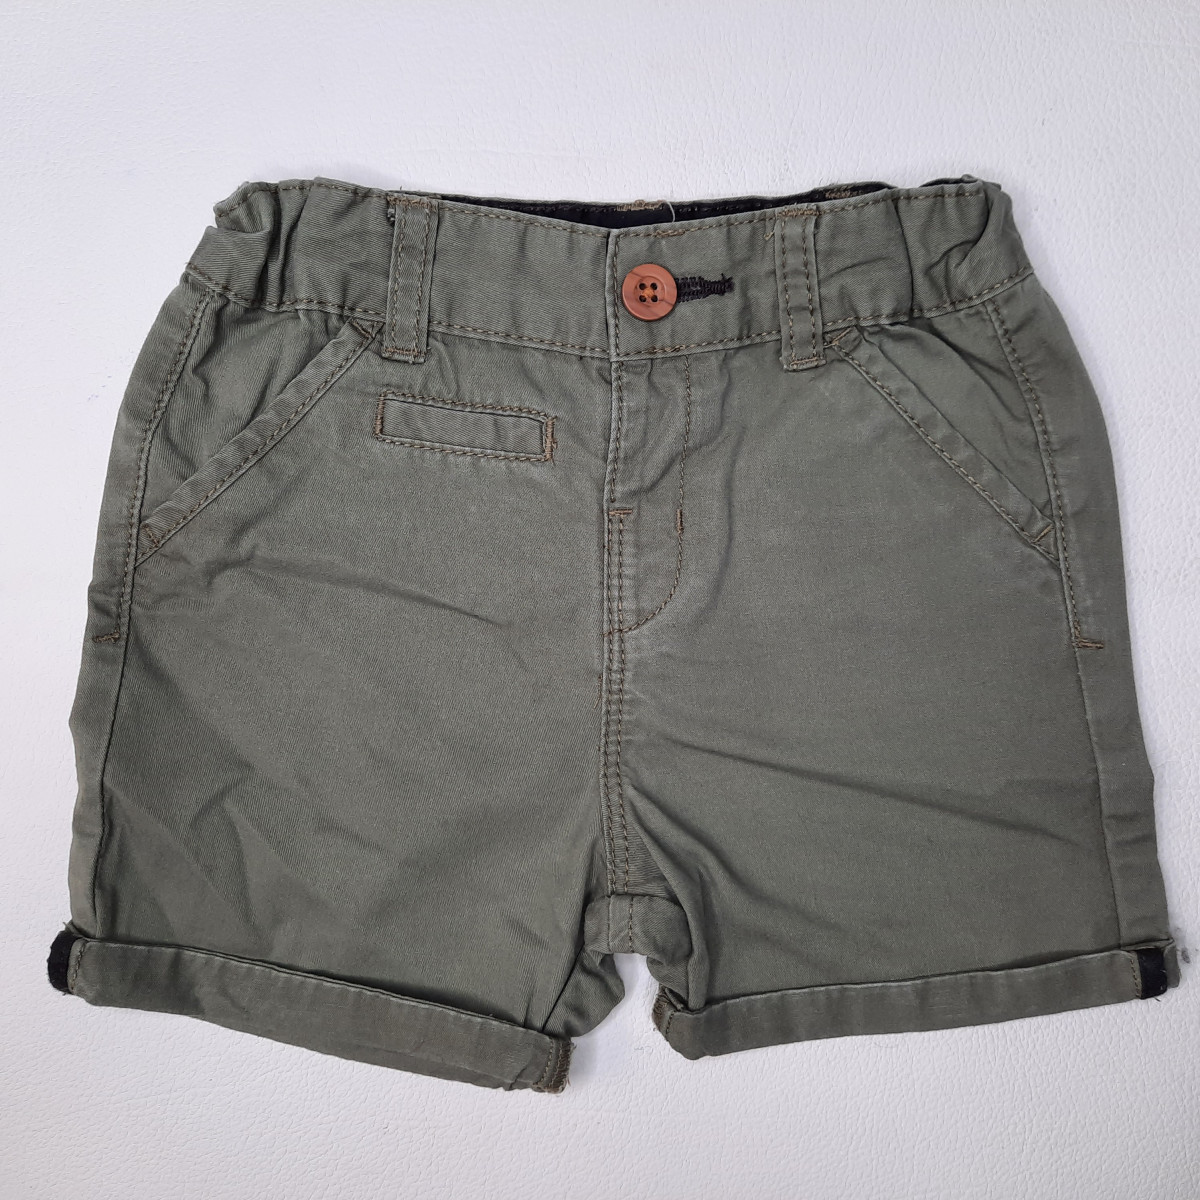 Shorts, Bermudas - photo 39